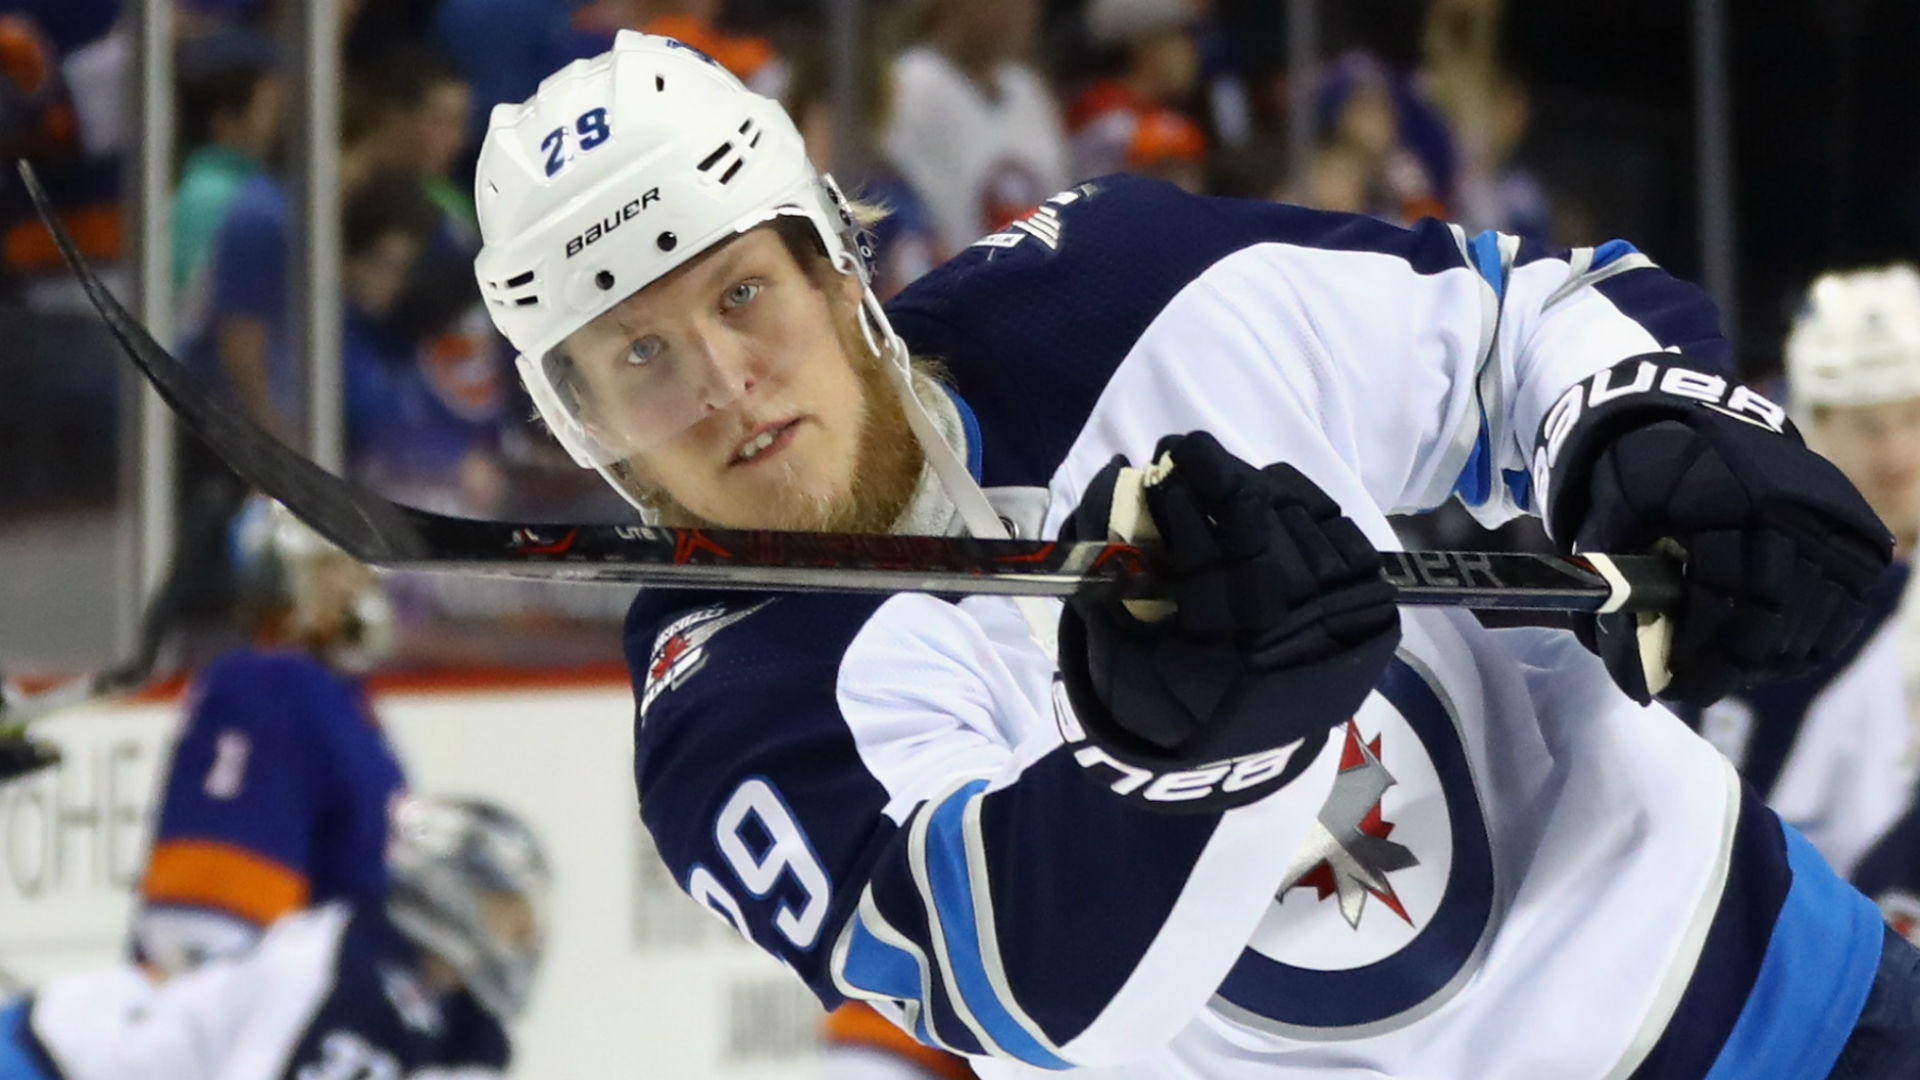 Patrik Laine puts NHL on notice with pedigree, personality of next great  goal scorer